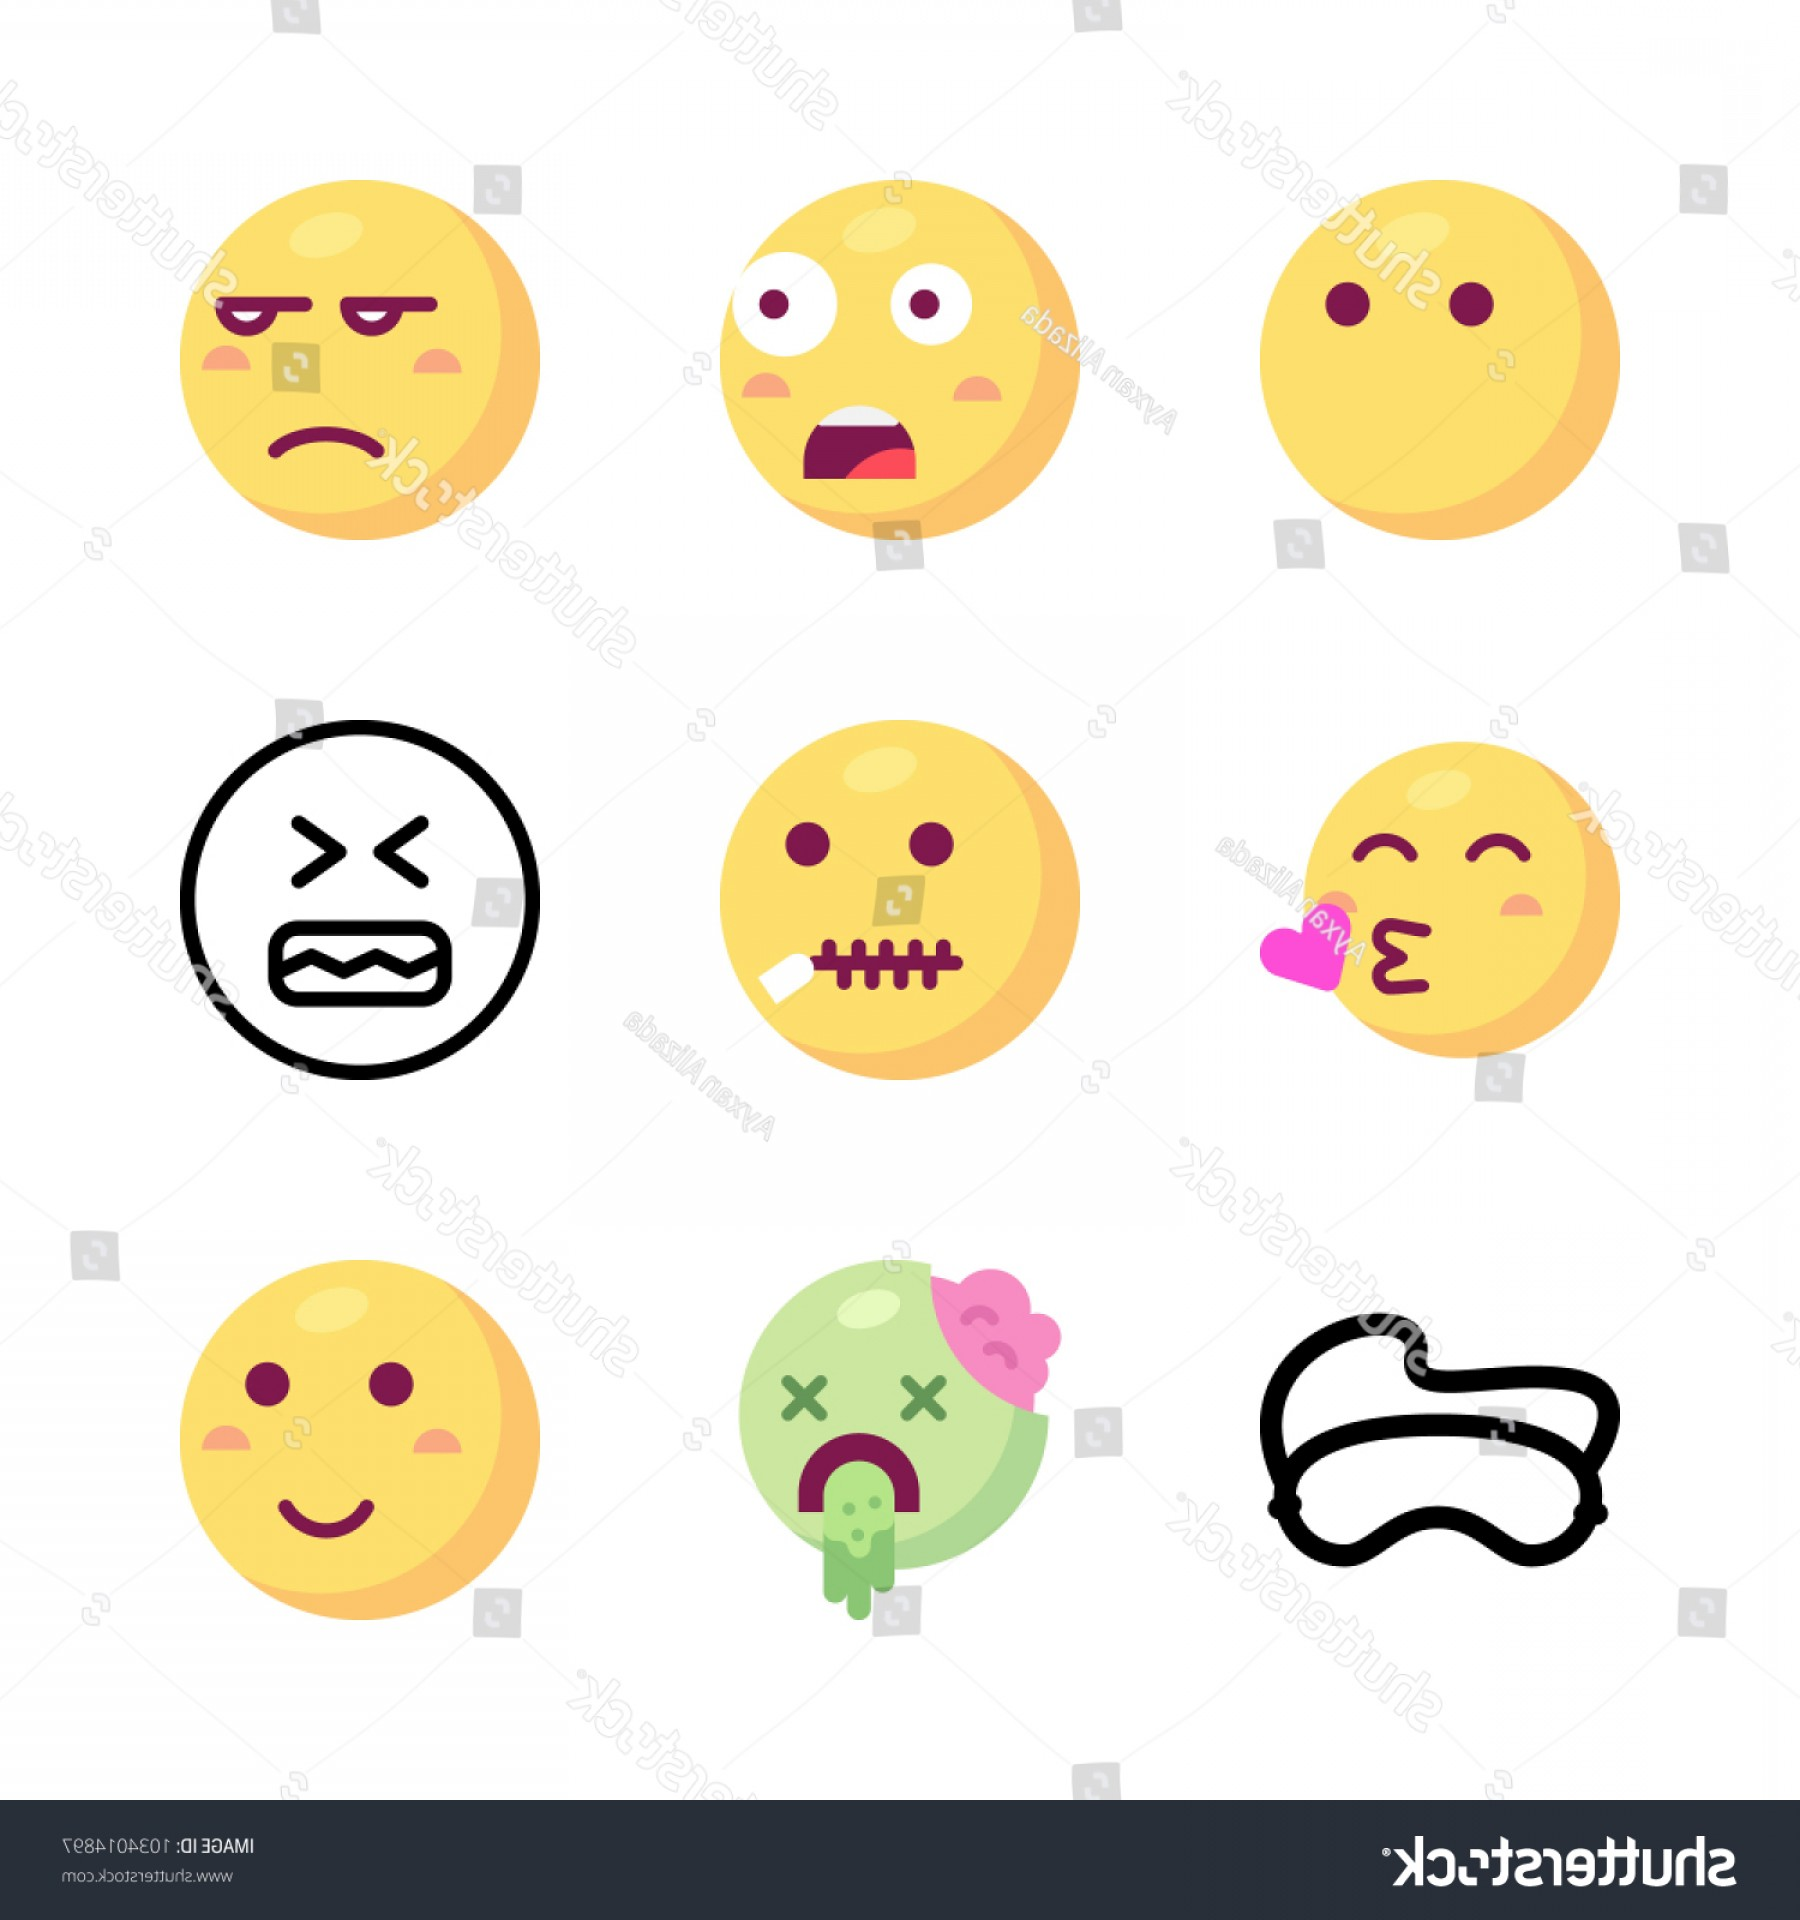 Angry Emoji Vector Icons: Icons Emoji Vector Mute Angry Unamused